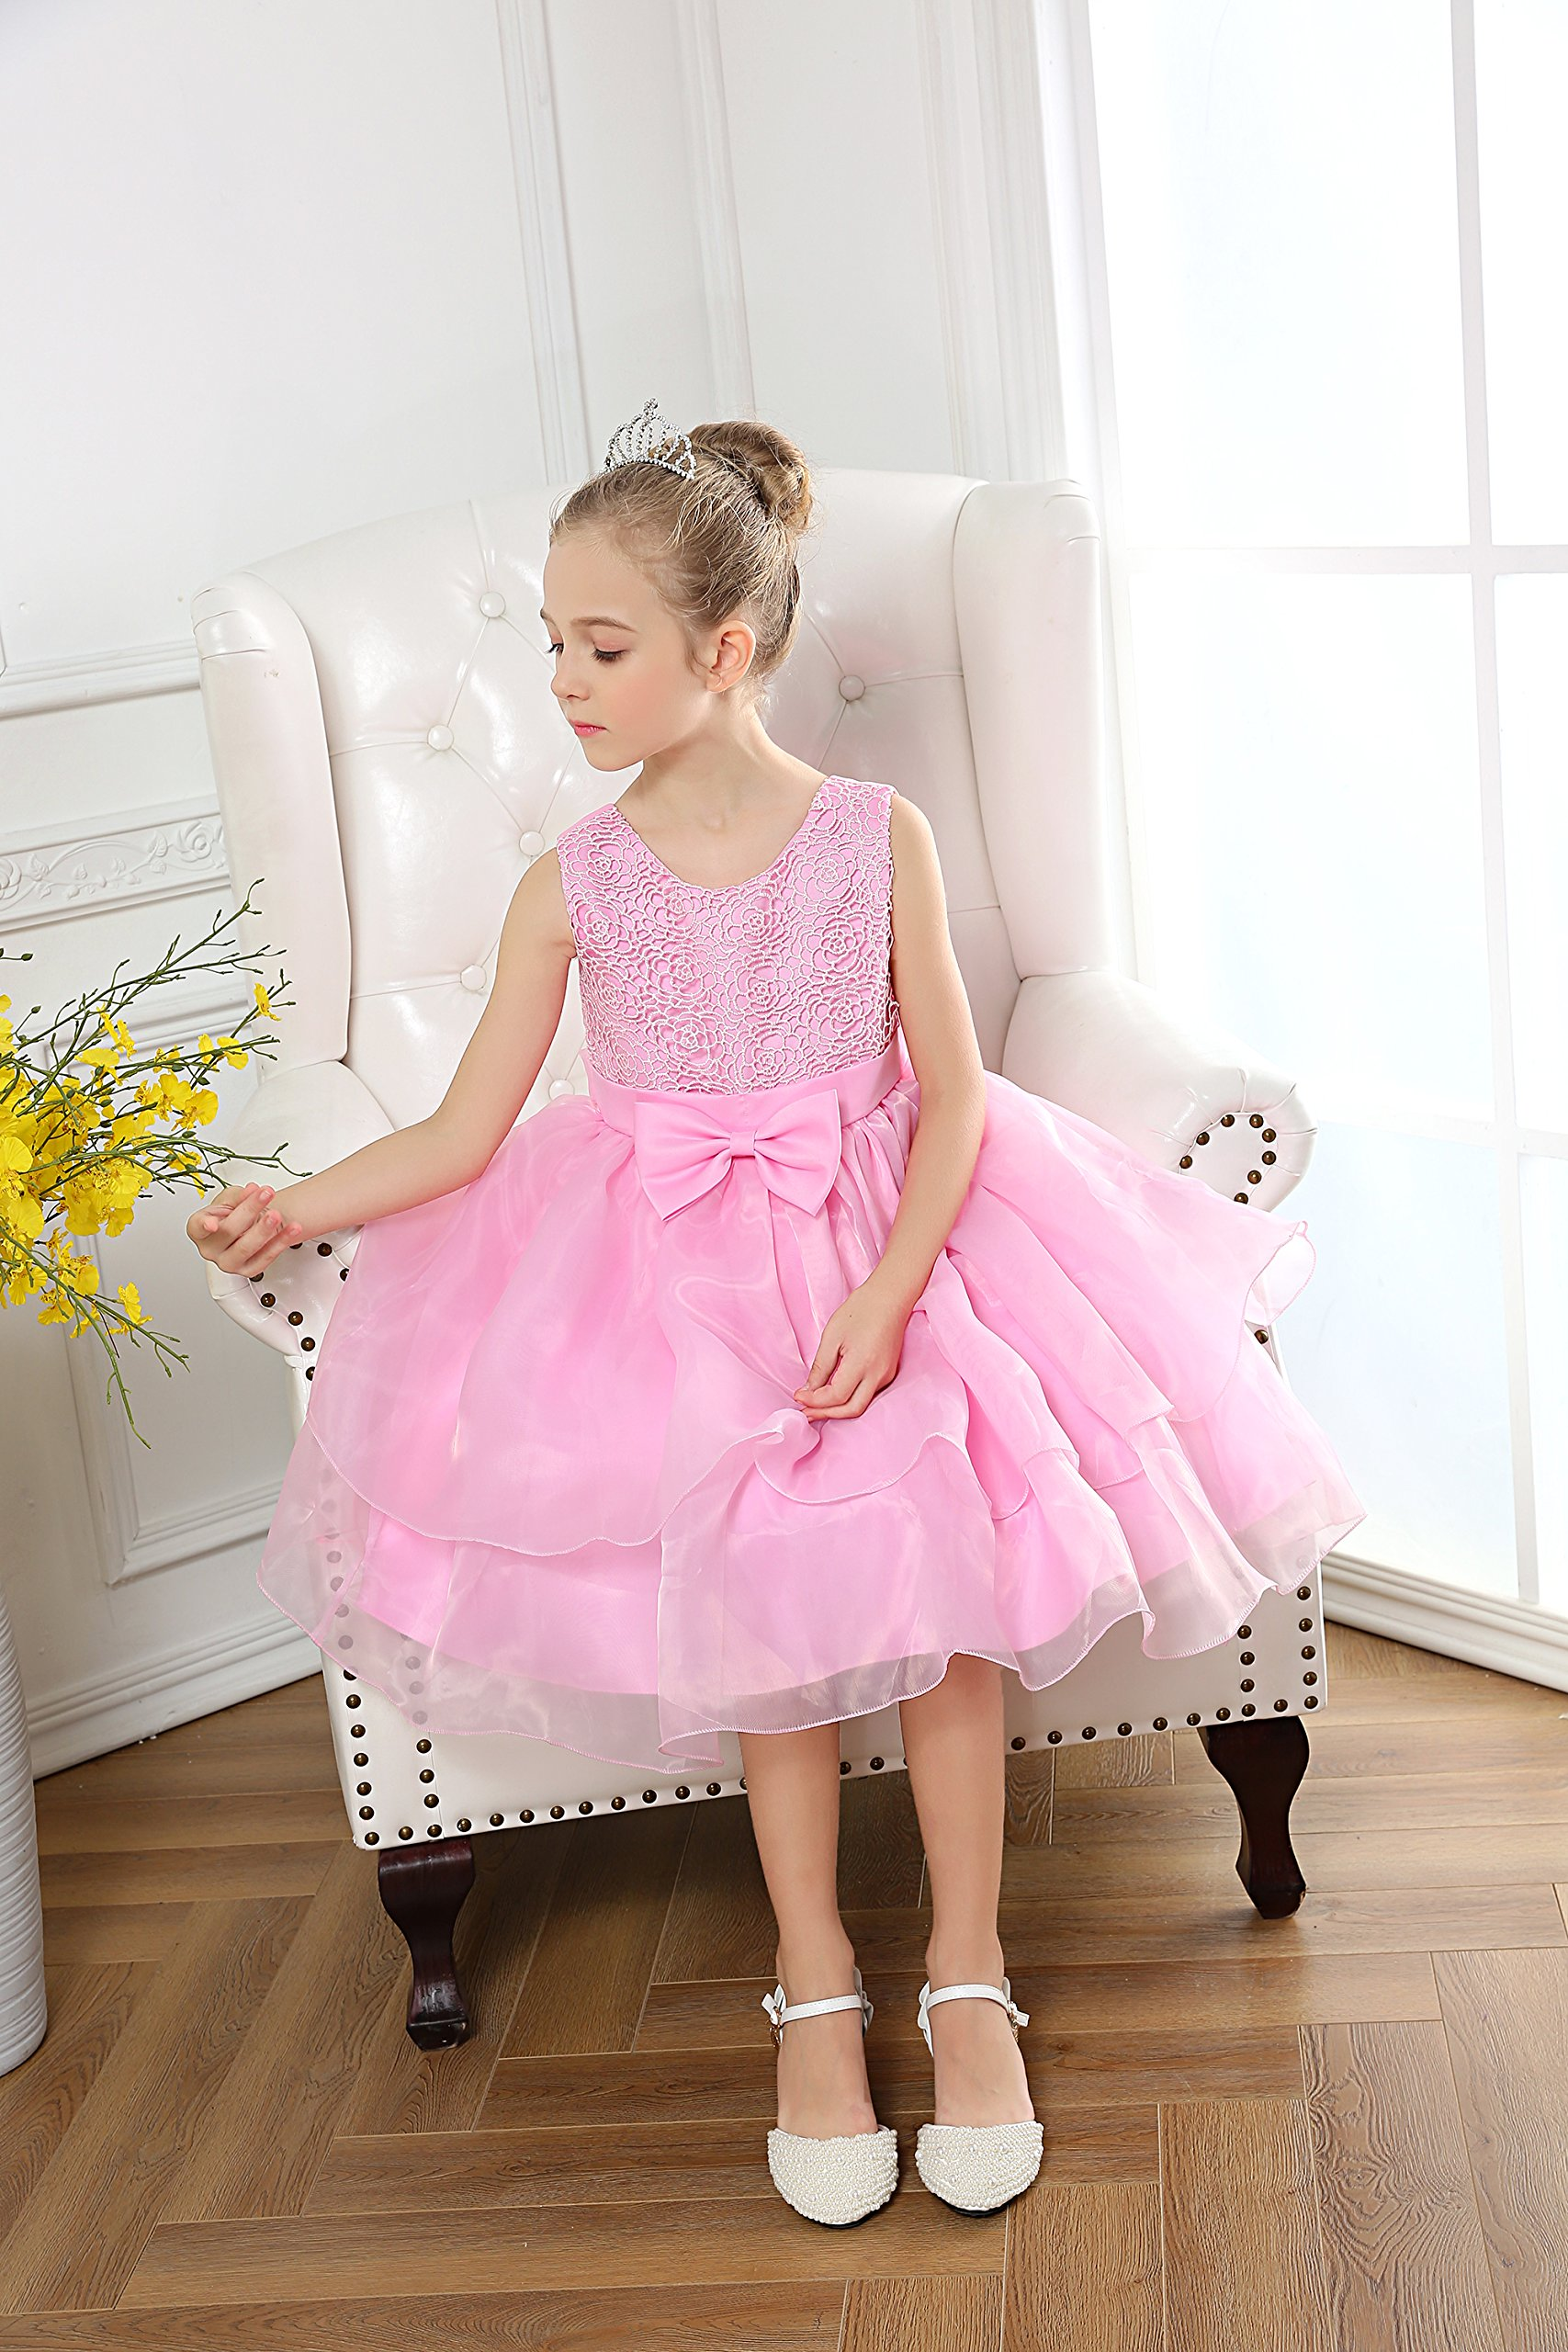 Fiream Flower Girls Dresses Tulle Sleeveless Princess Pageant Wedding Party Dresses(pink,3T/3-4YRS) by Fiream (Image #4)